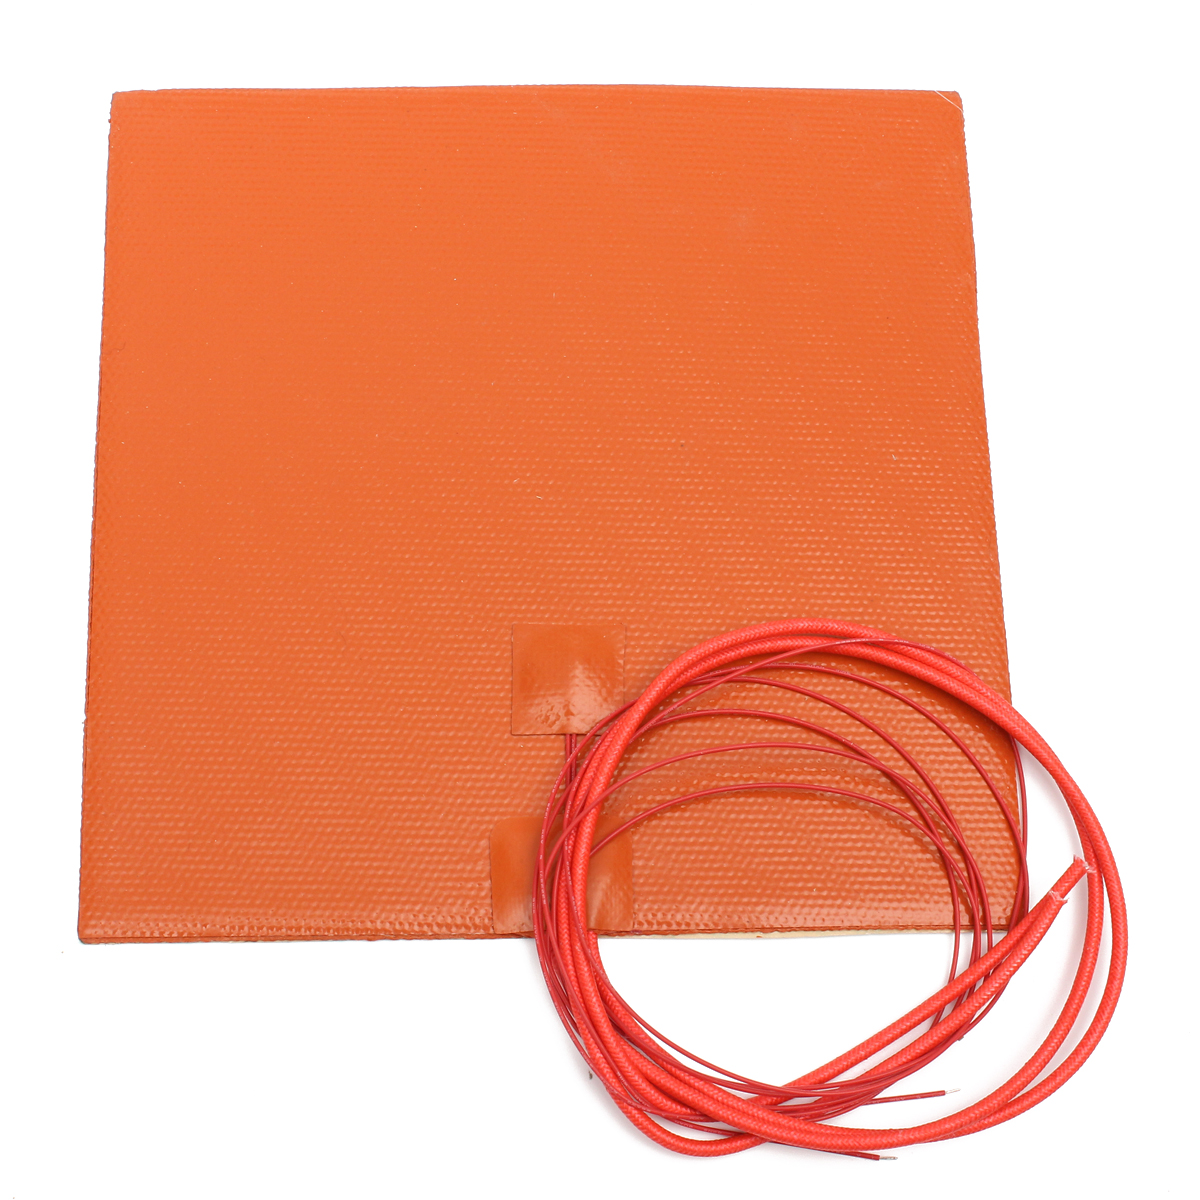 12V 200W 200mmx200mm Waterproof Flexible Silicone Heating Pad Heater For 3d Printer Heat Bed New usa material 200mmx200mm flexible cube silicone heater 200w 12v silicone heater prusa i3 reprap 3d printer heated bed